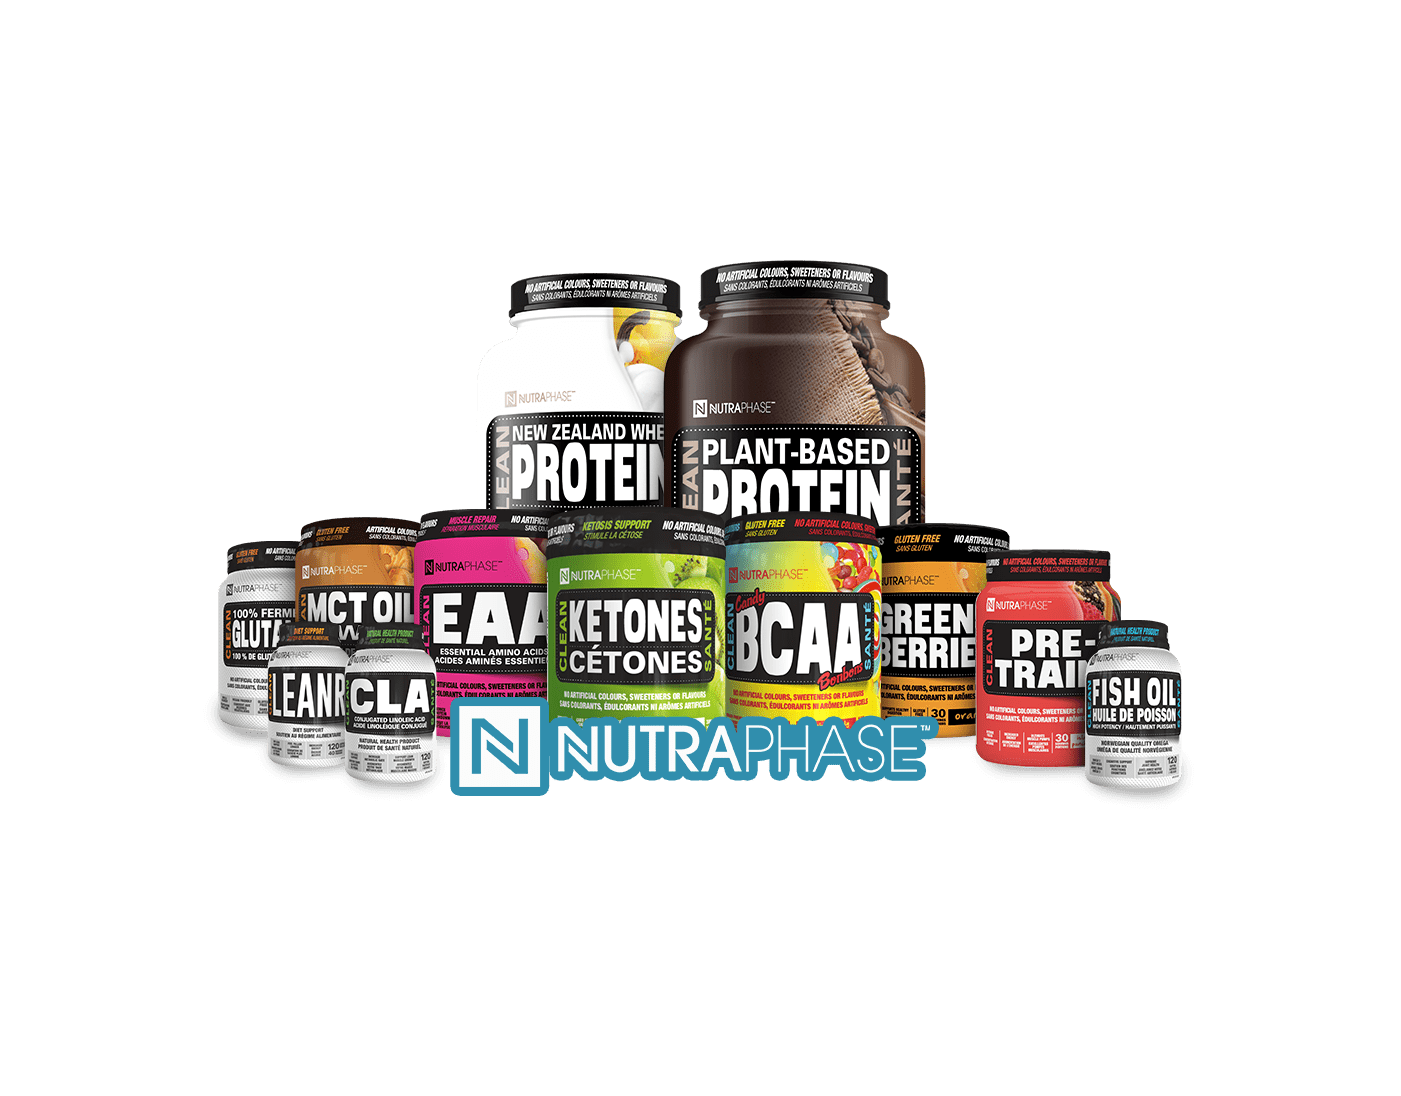 01327_Nutrition Excellence Web Slider Design_Nutraphase